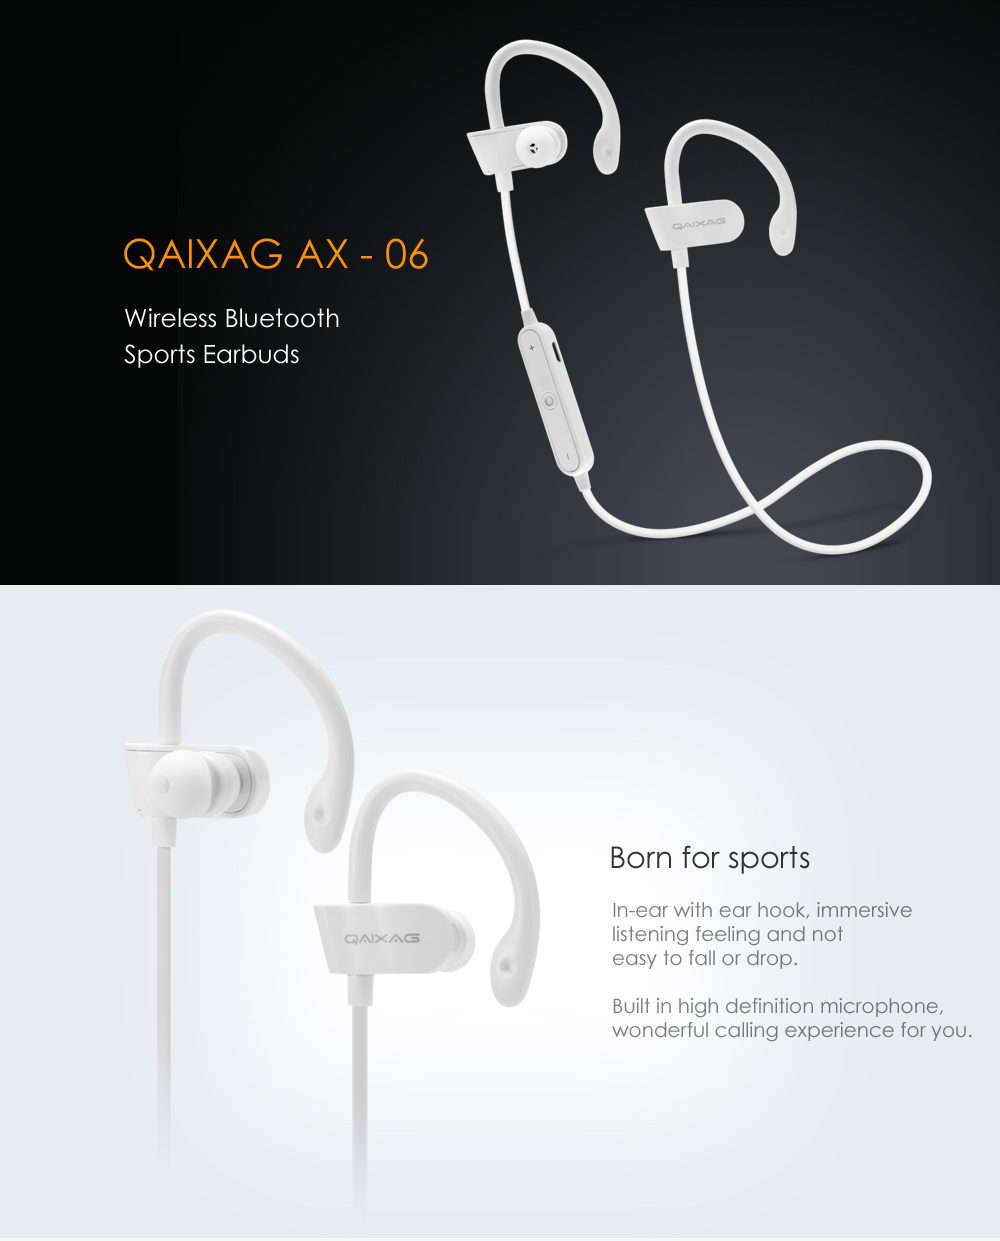 QAIXAG AX - 06 Wireless Bluetooth Sports Earbuds with On-cord Control